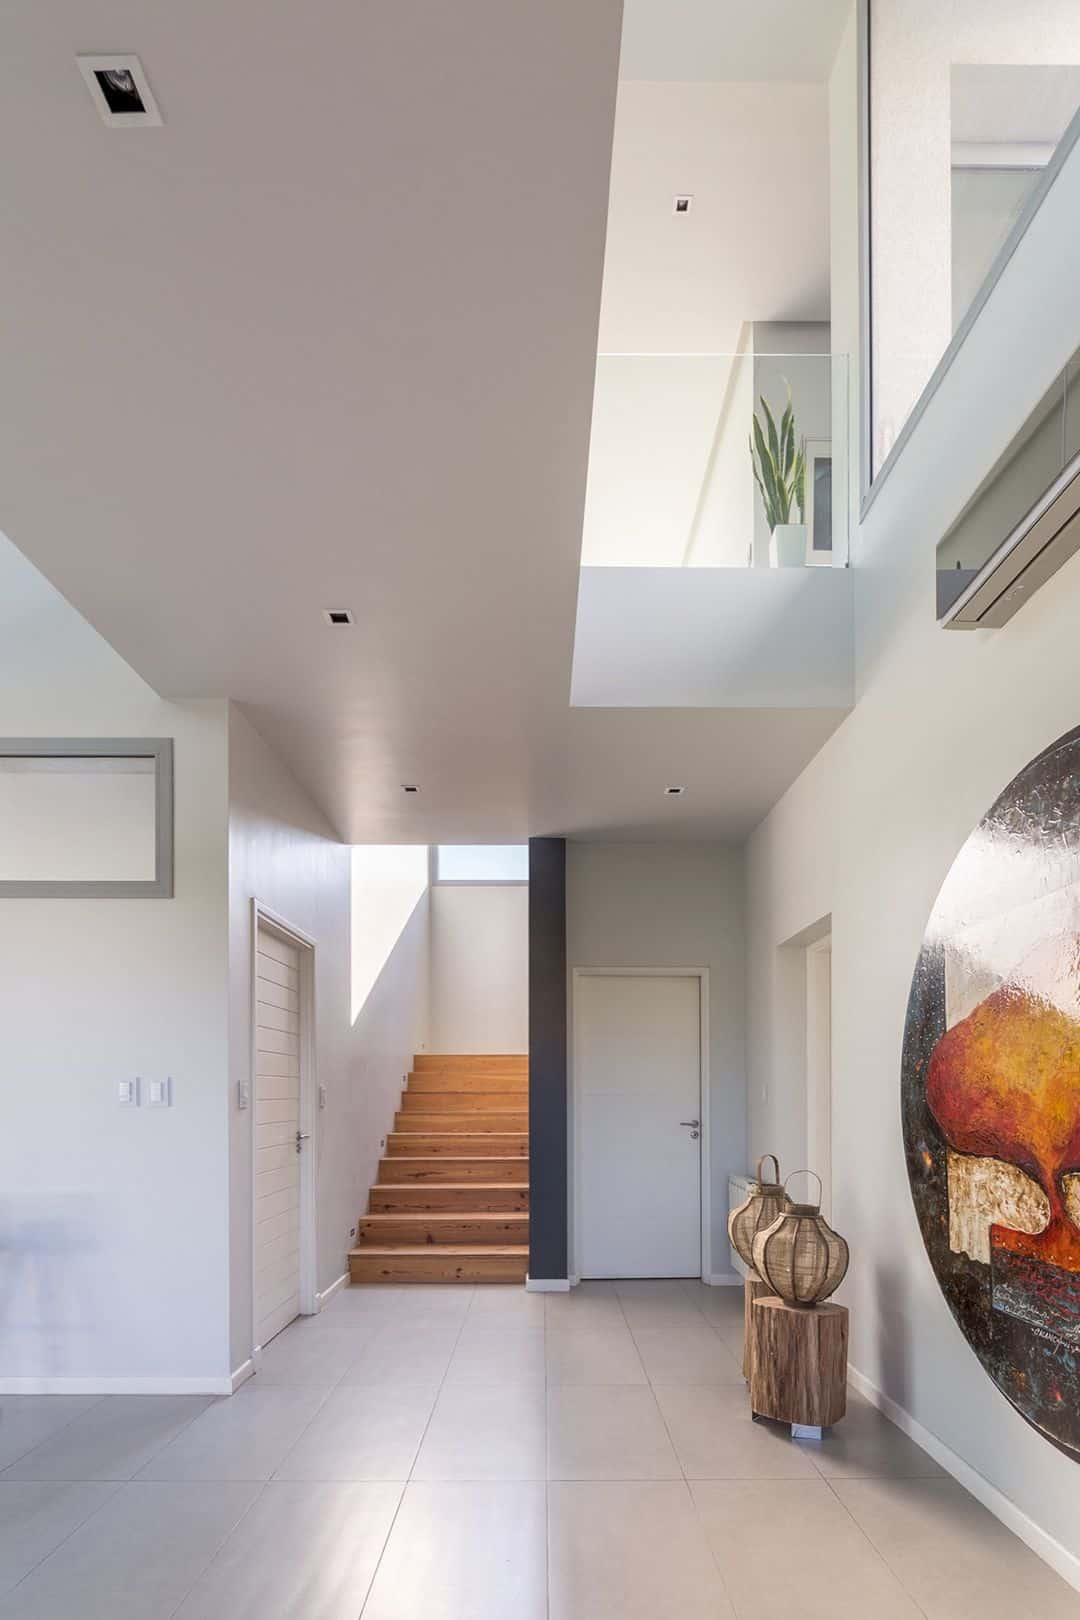 House In El Paso Enhancing The Relationship Inside With The Surrounding Landscape 5